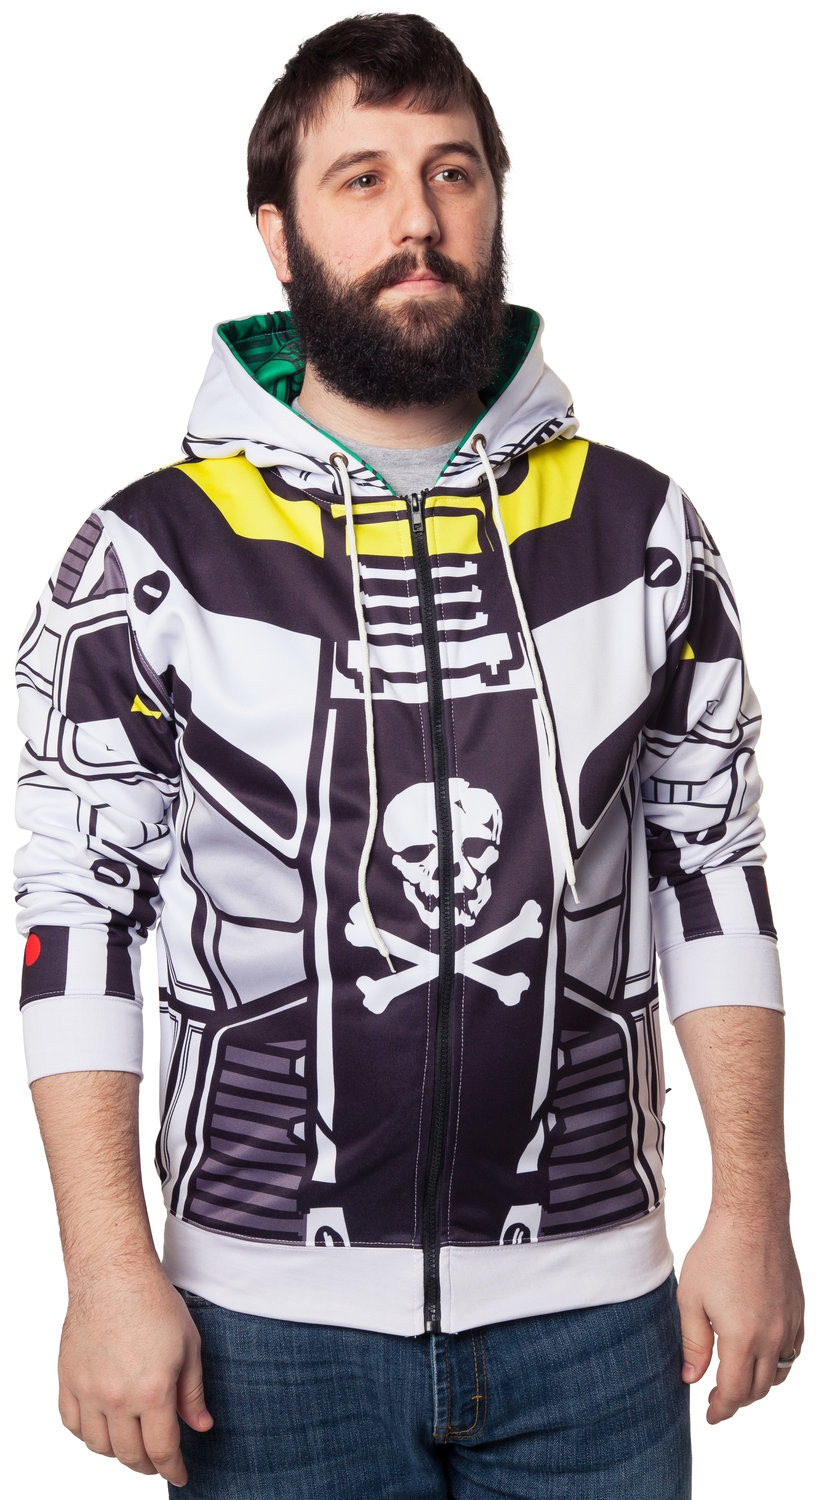 robotech-skull-one-sublimation-costume-hoodie.2.jpeg